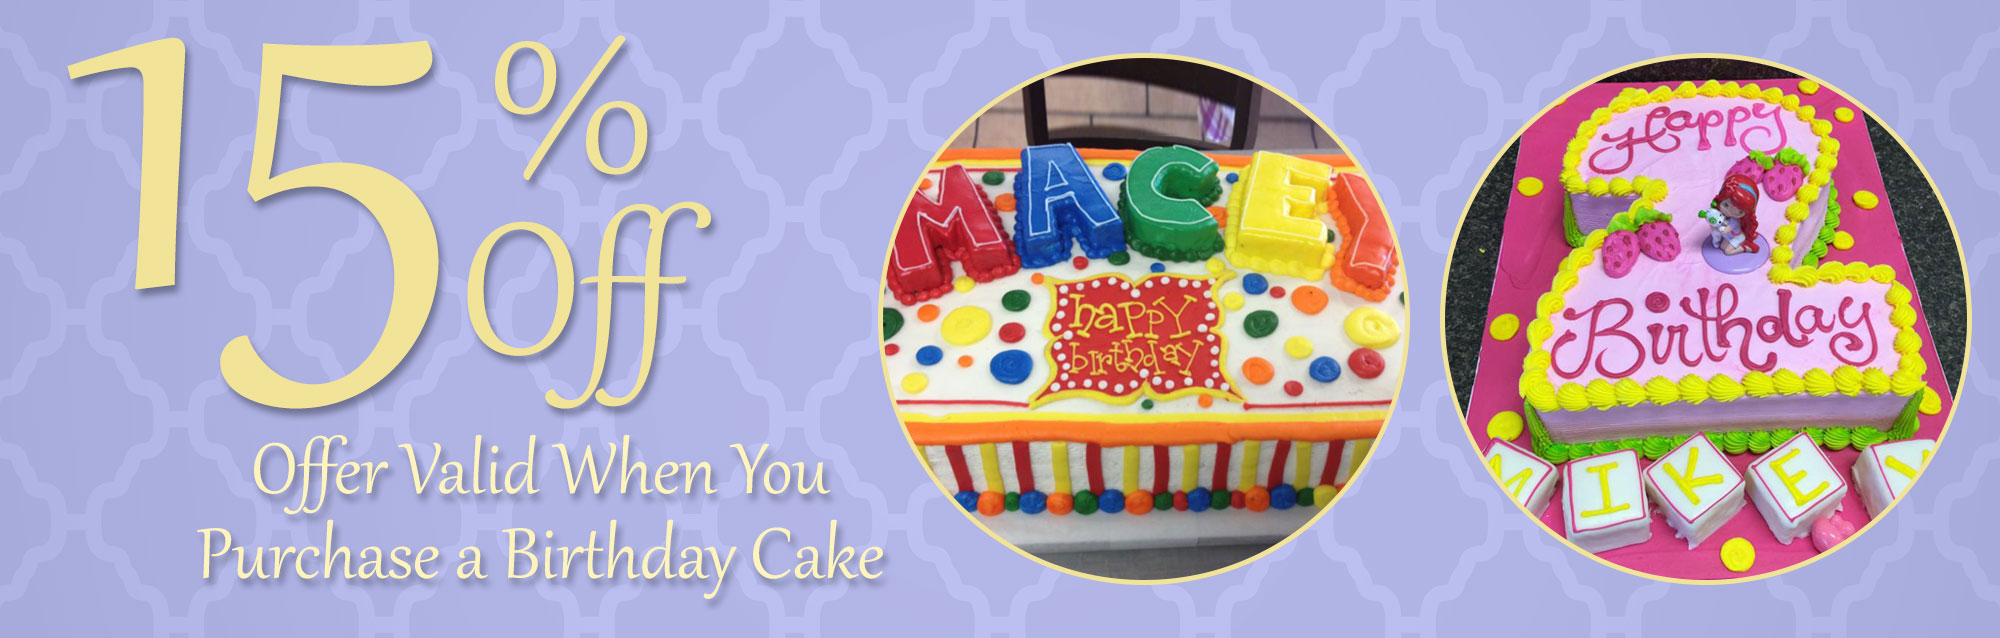 15% Off - Offer Valid When You Purchase a Birthday Cake